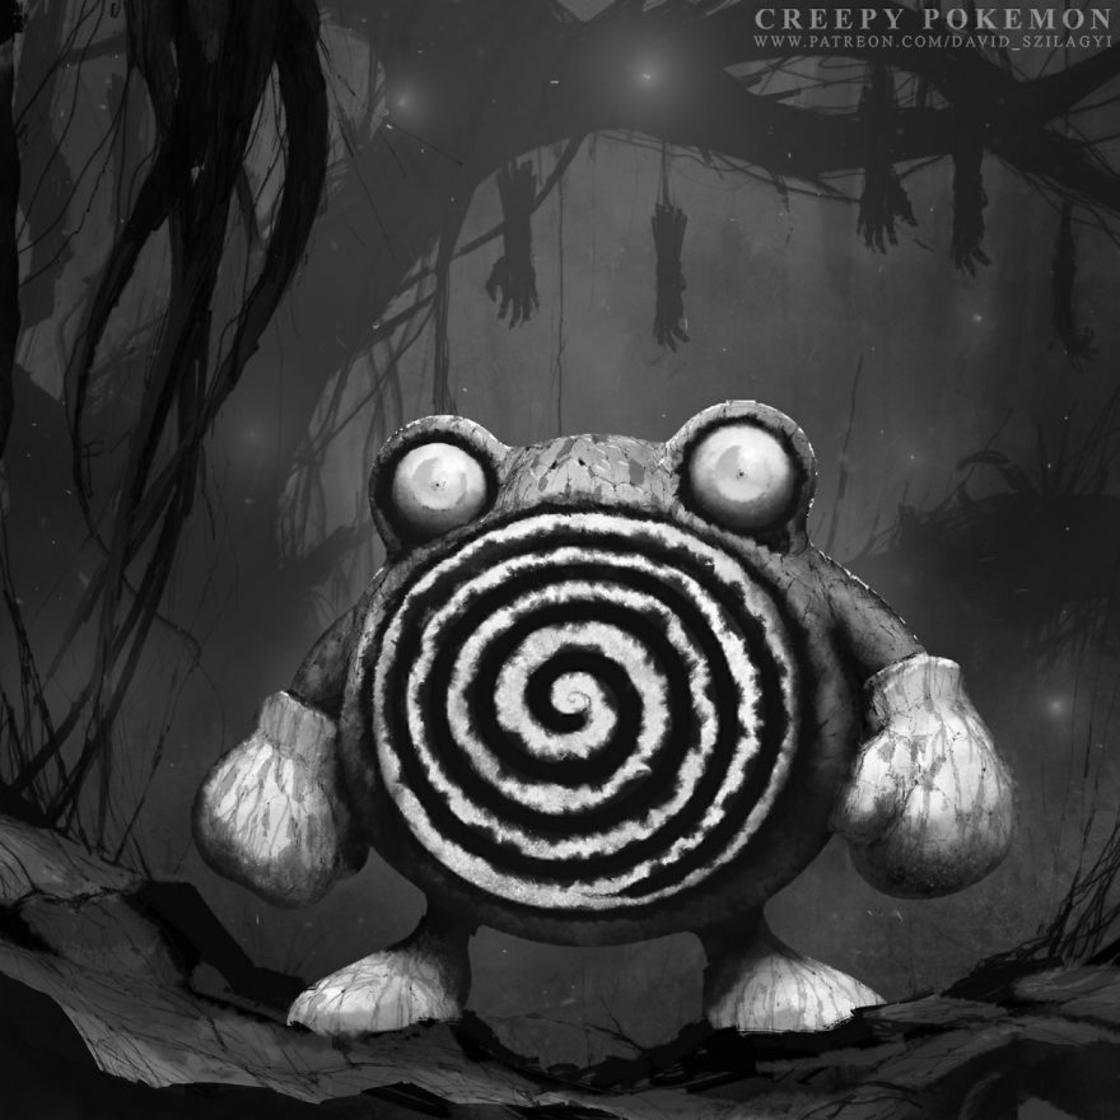 Pokemon Monsters – Quand un illustrateur devoile le cote sombre des Pokemon